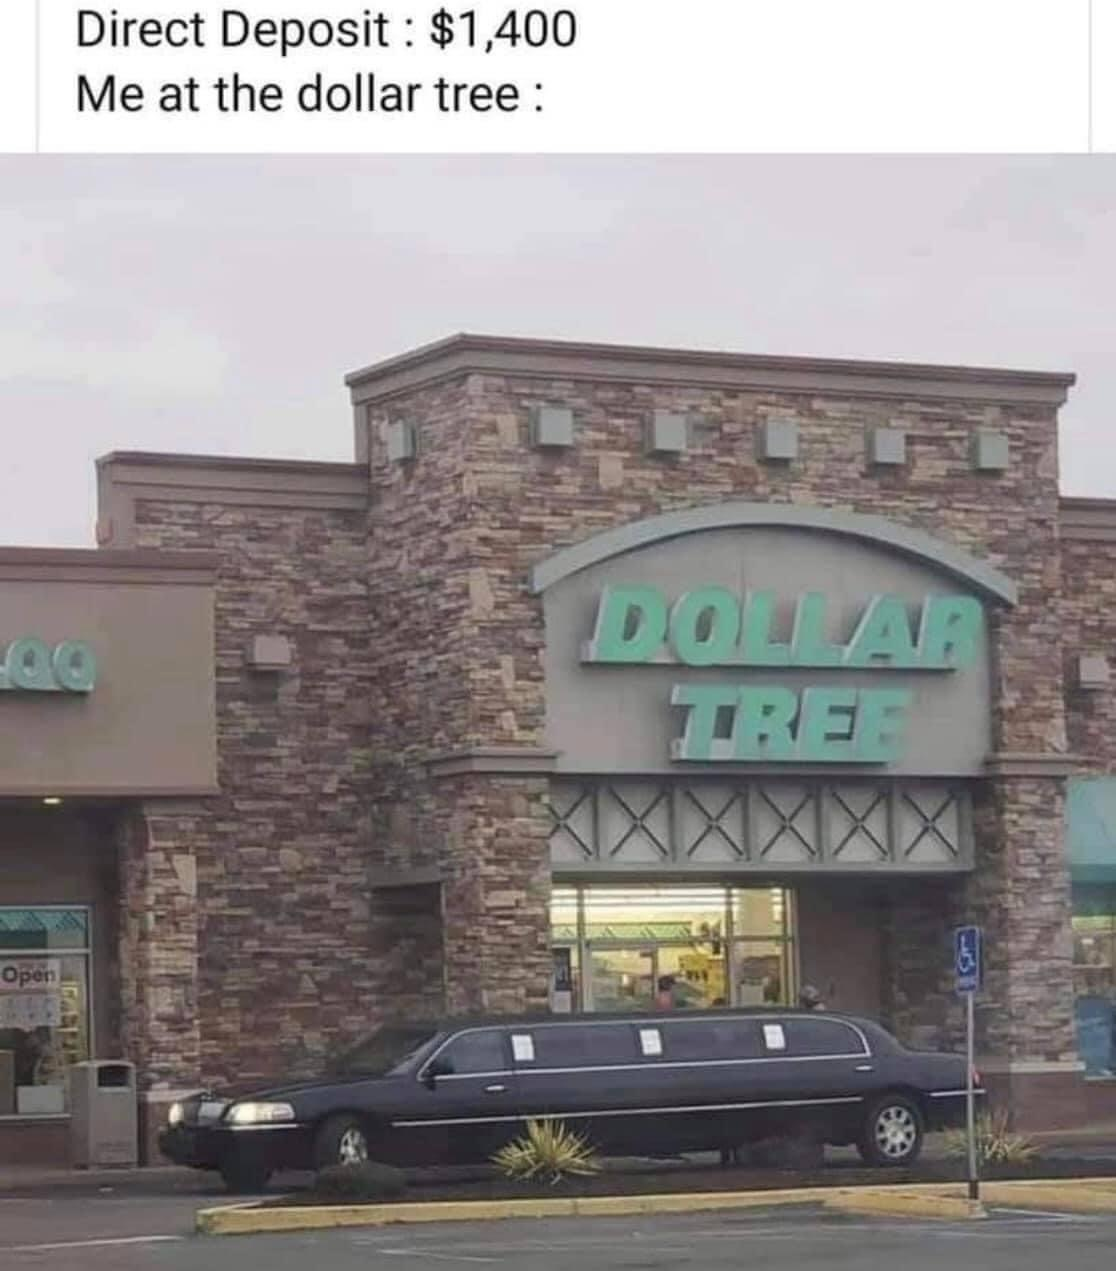 """Walk in:   """"I'll buy the whole store!"""" - meme"""